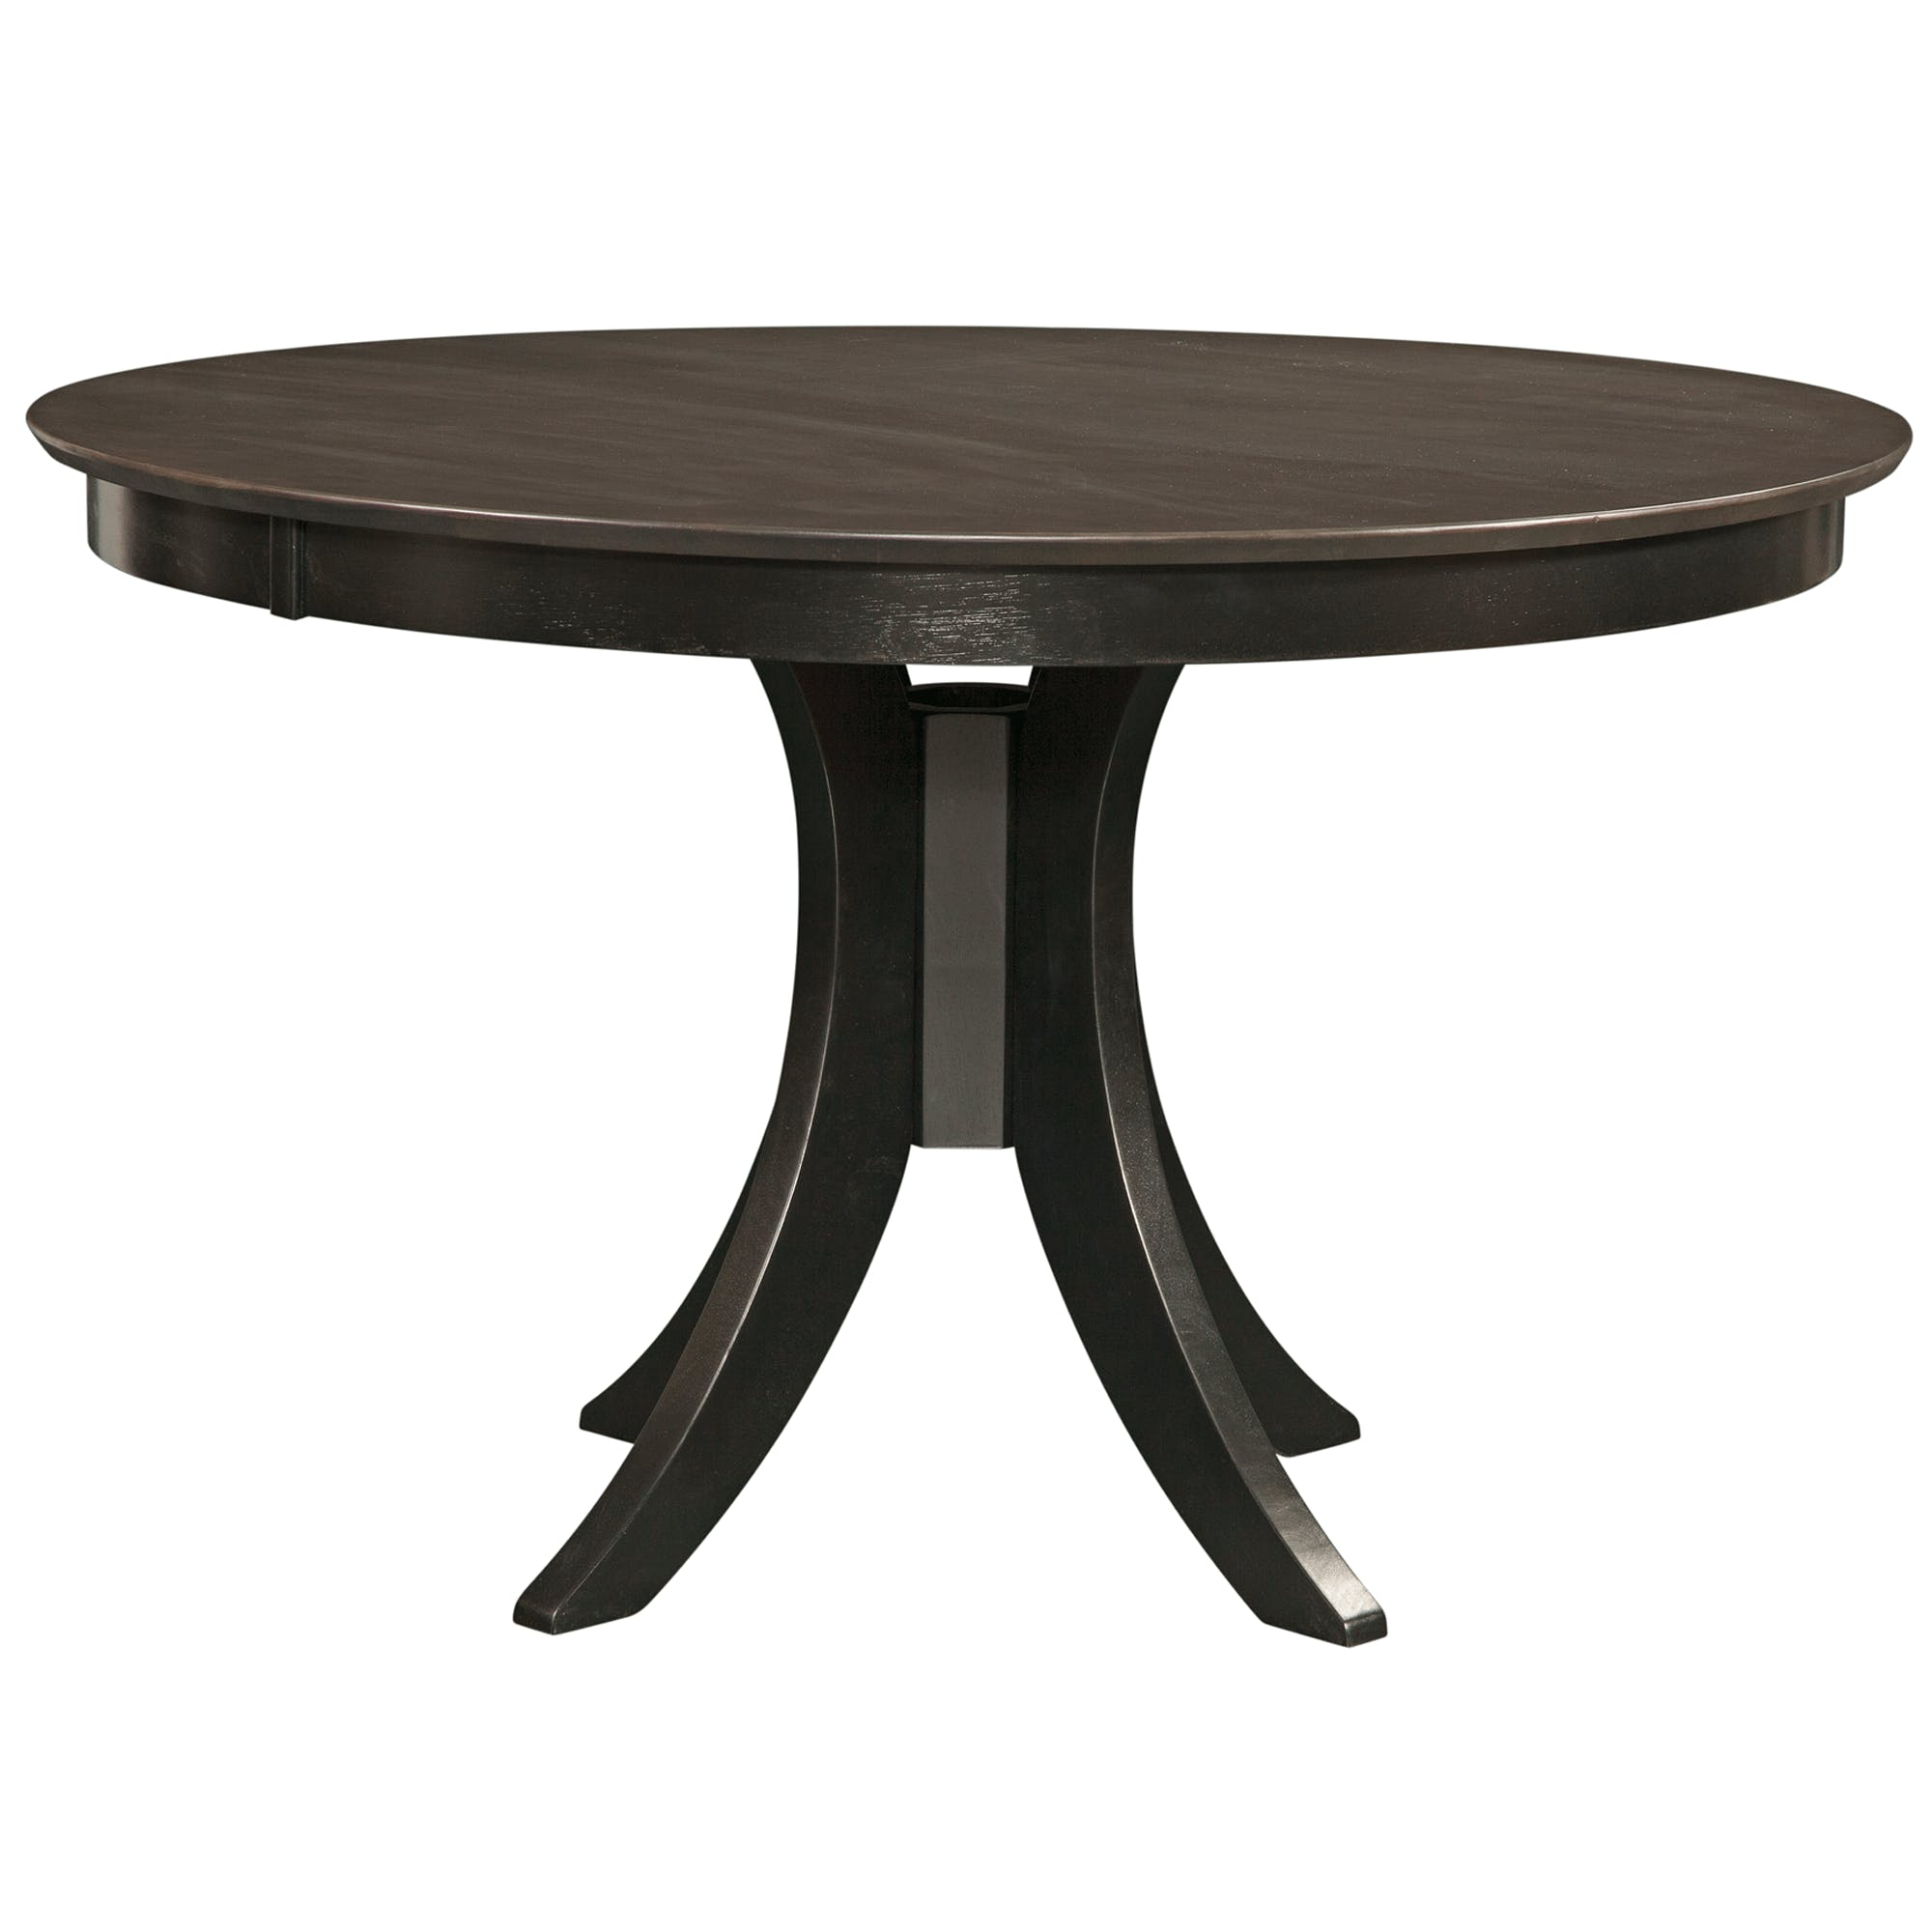 distressed black tables small tall antique glamorous round pedestal looking diy bedside end unfinished good accent oak table wood large full size outdoor wicker side with umbrella